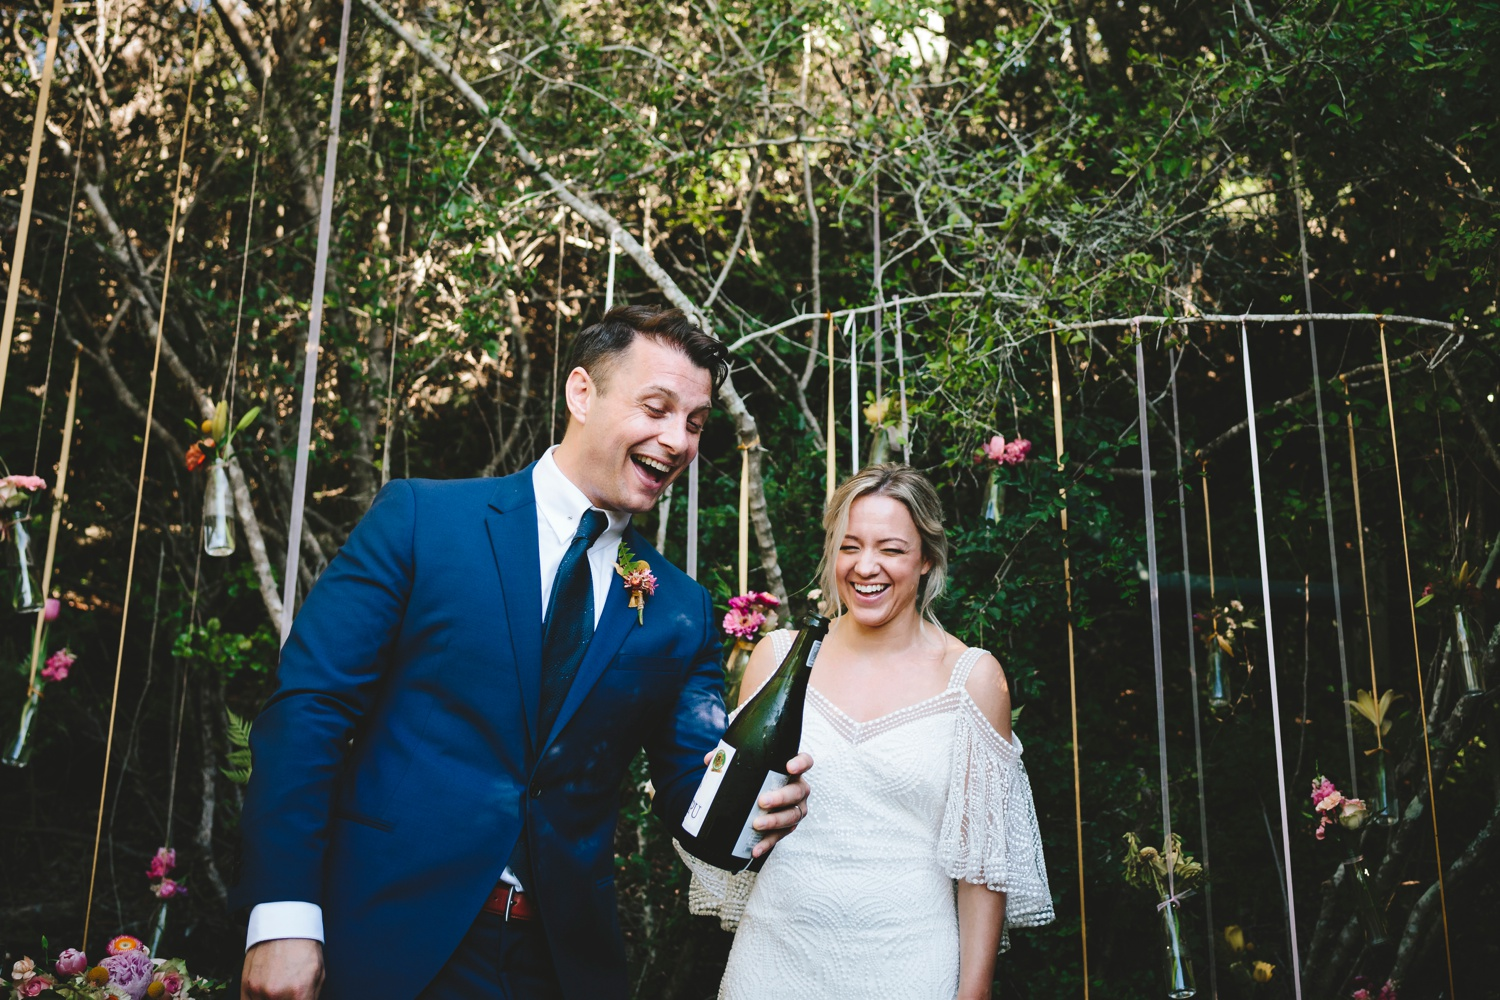 charlie_ray_photography_runaway_romance_elopement_emily_moon_plett_simple_boho_wedding_south_africa_bohemium_0069.jpg